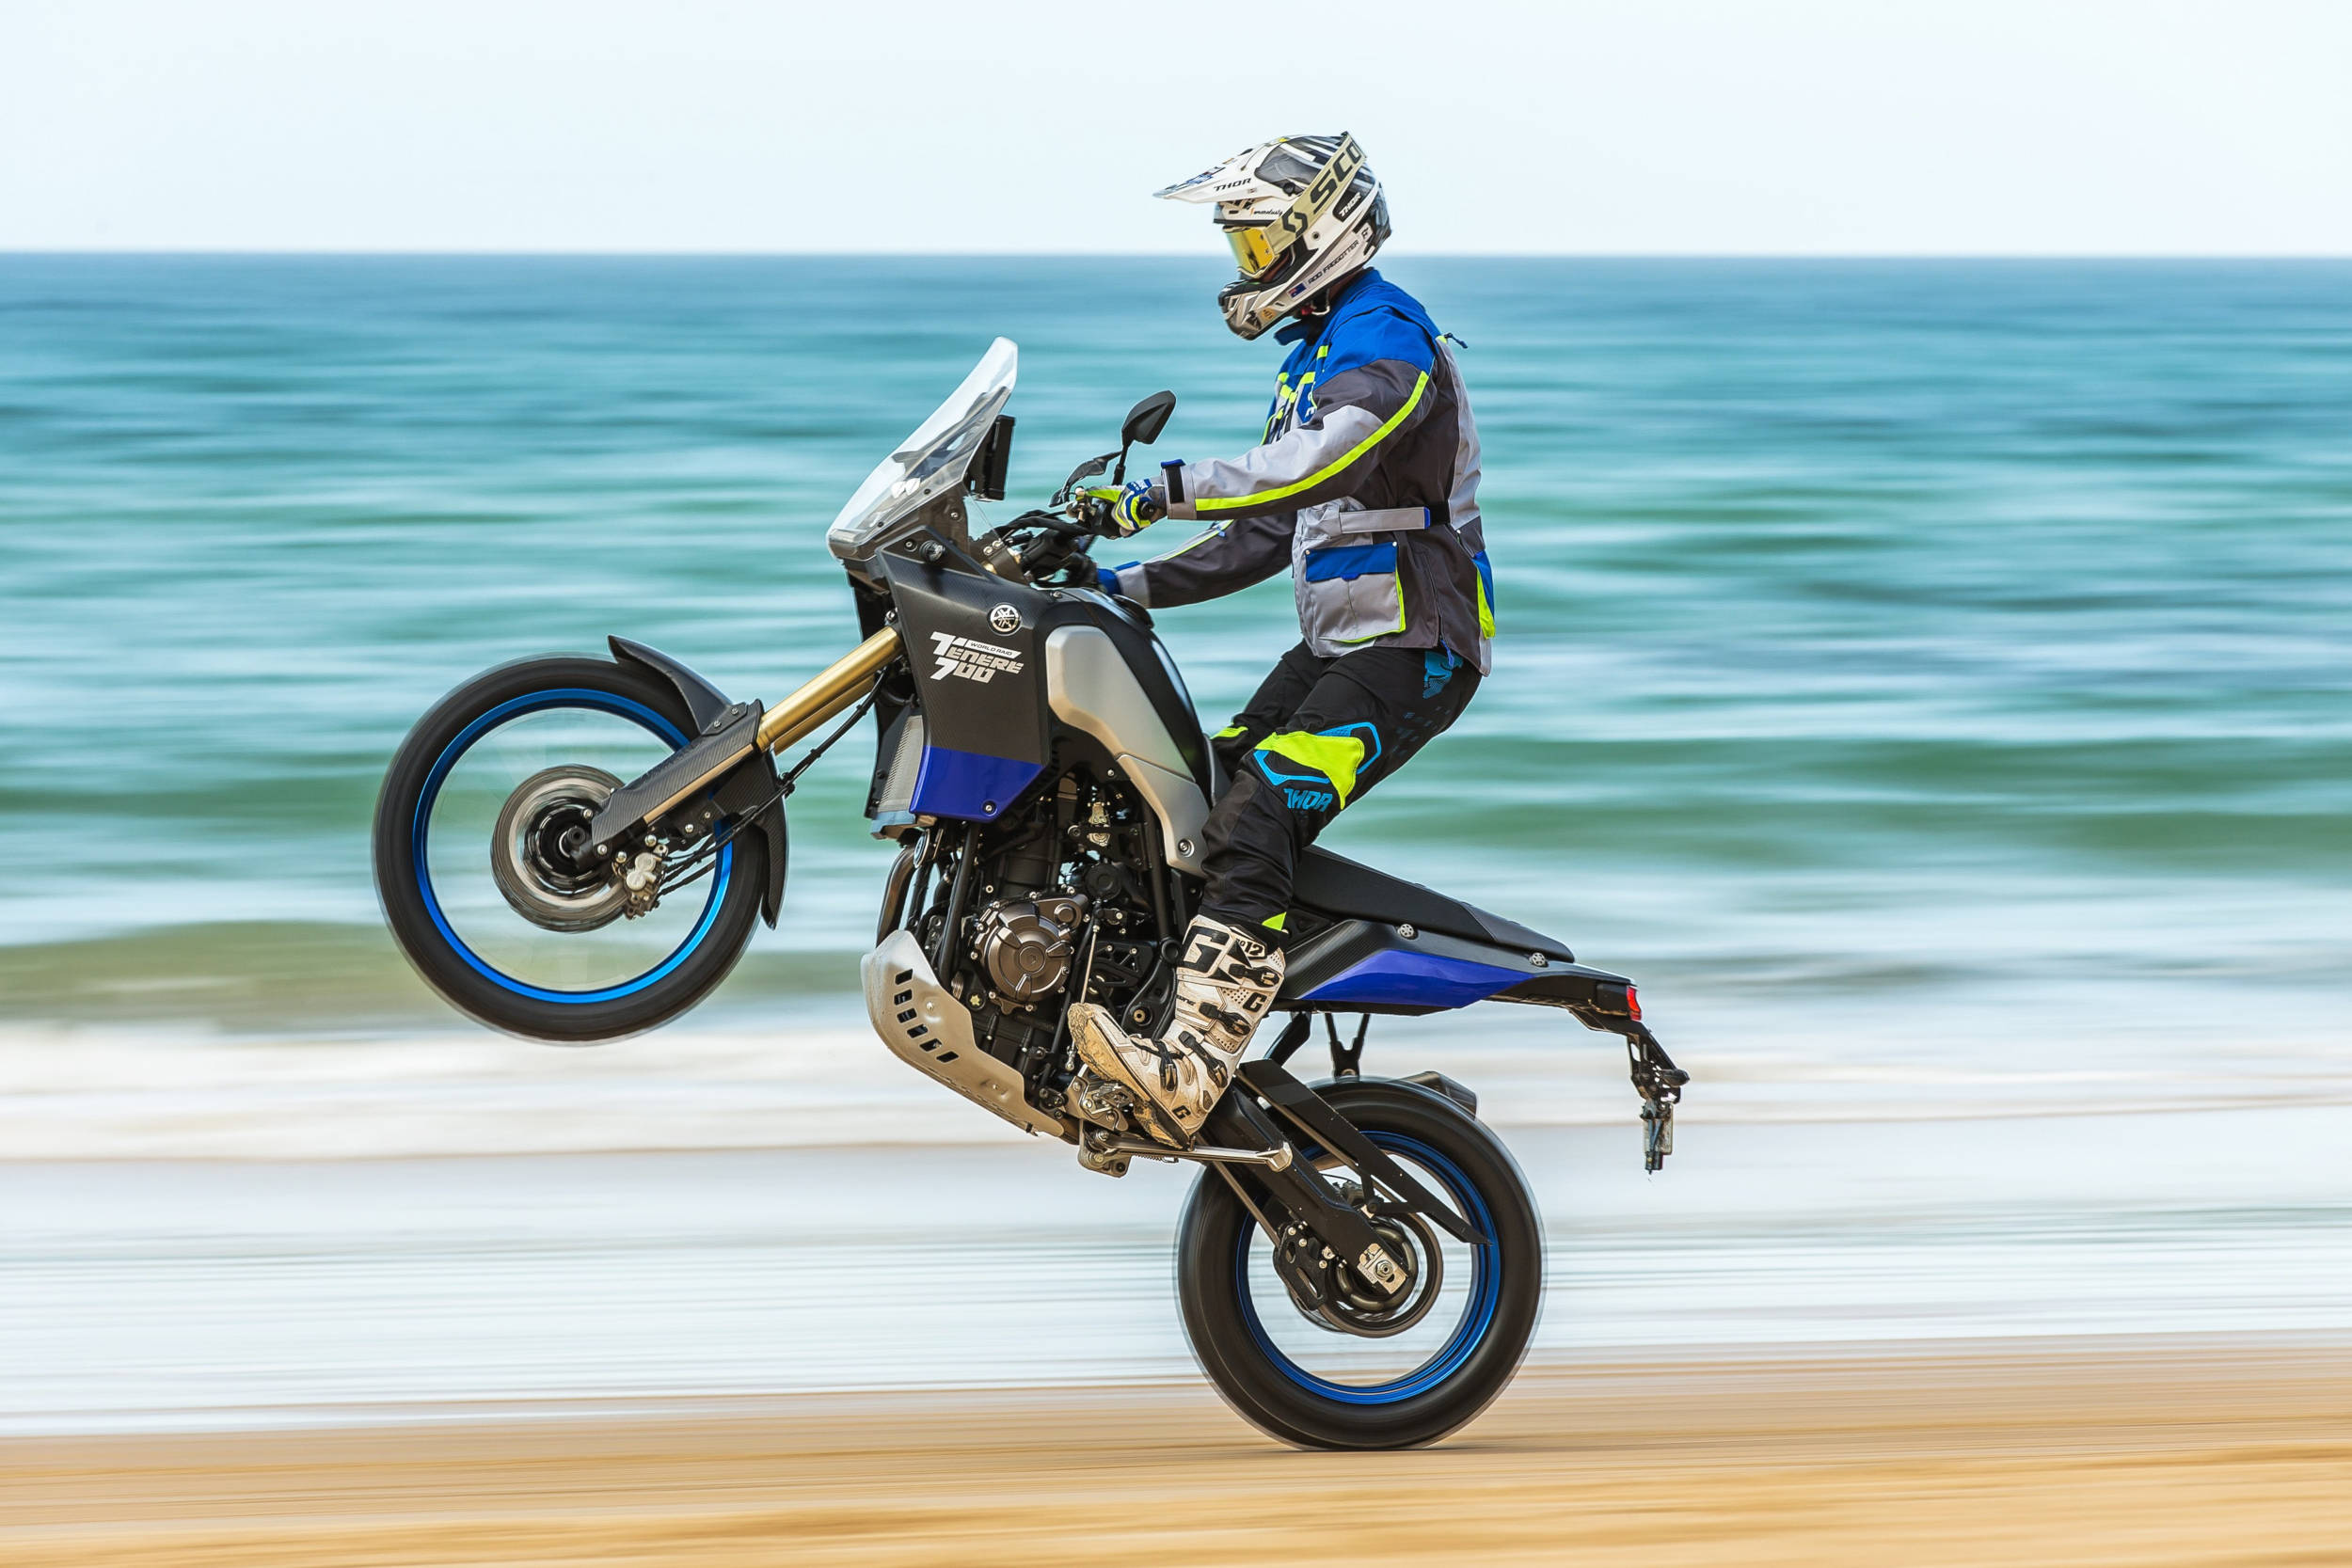 Yamaha t n r 700 world raid tour precedes production for Yamaha tenere 700